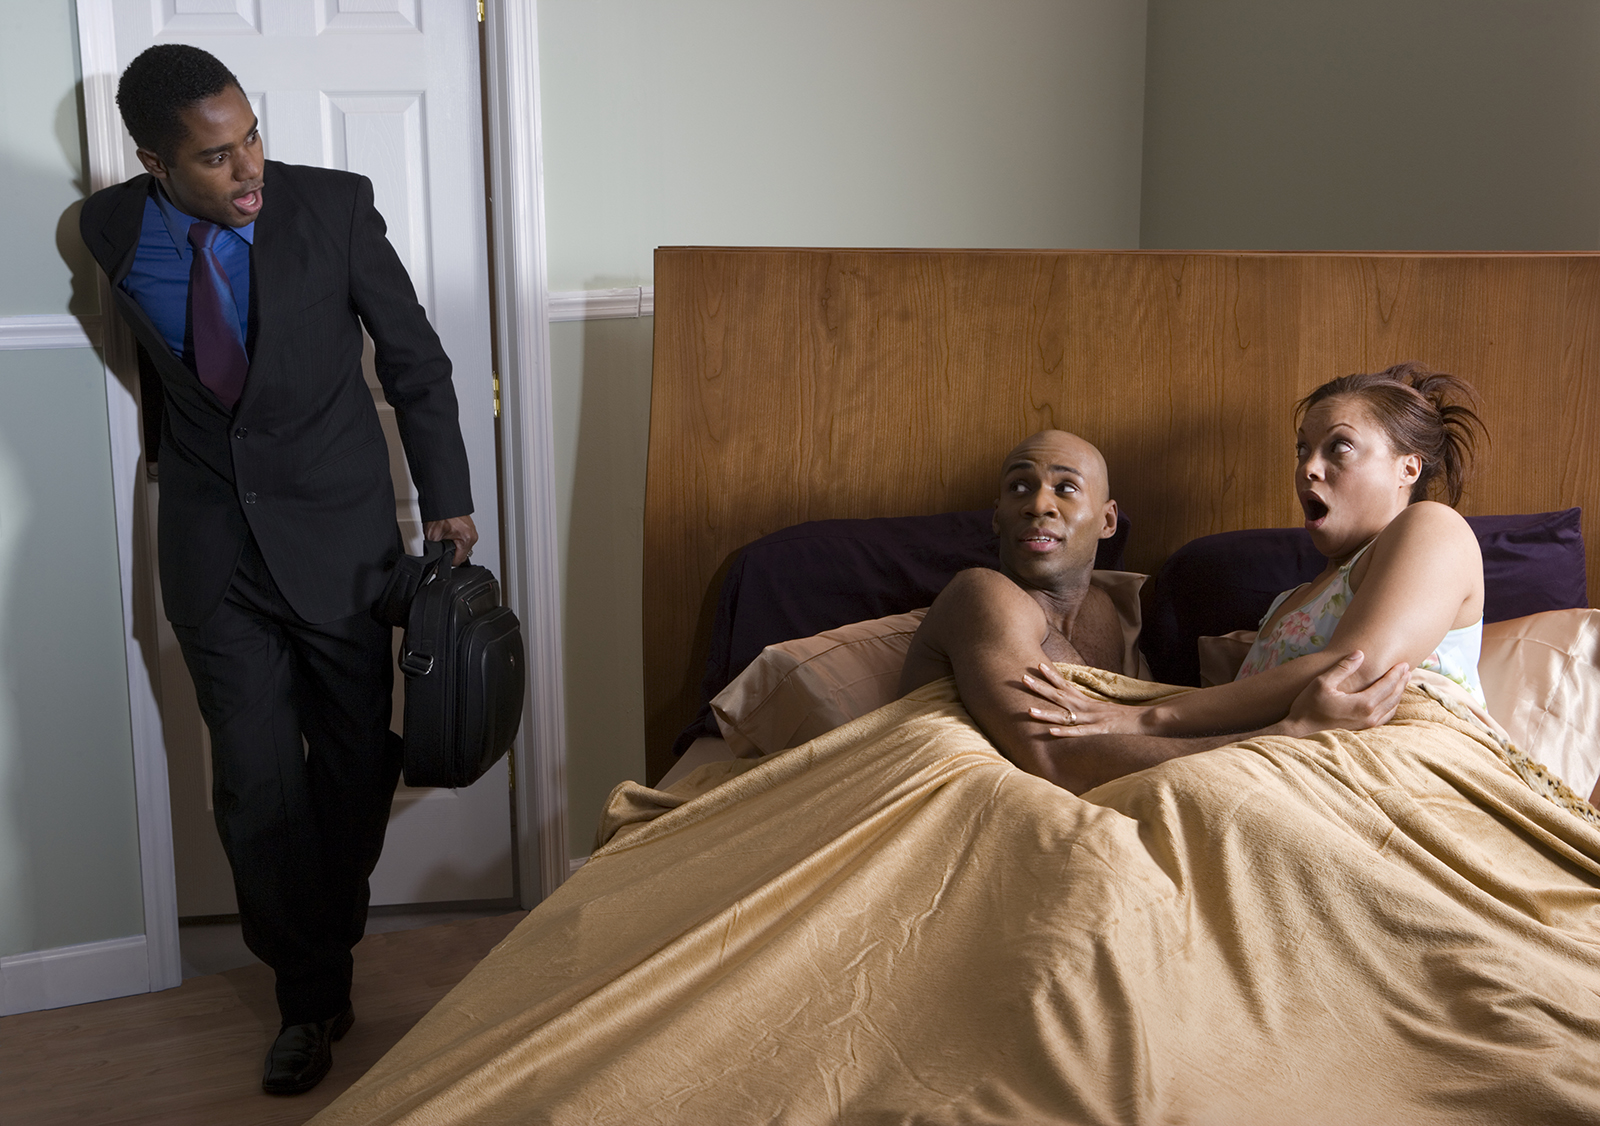 SAD: Man Catches Newlywed Wife Cheating On Him One Week